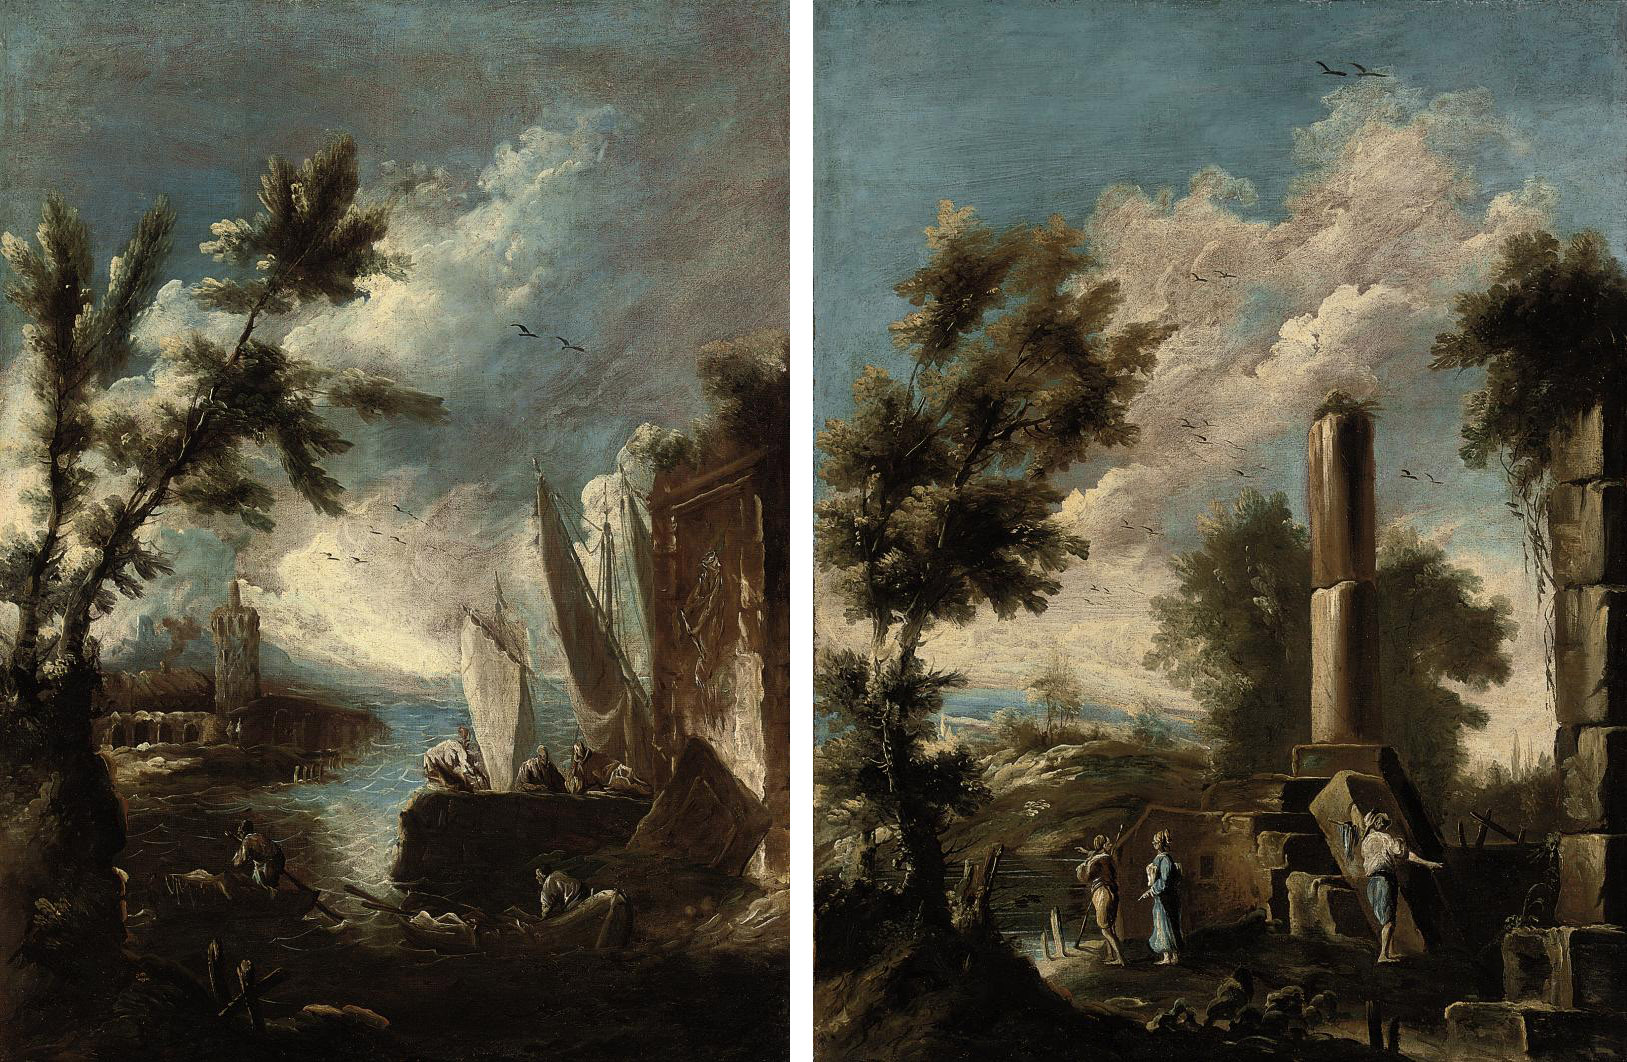 A wooded landscape with figures amongst ruins; and A coastal landscape with figures by a boat